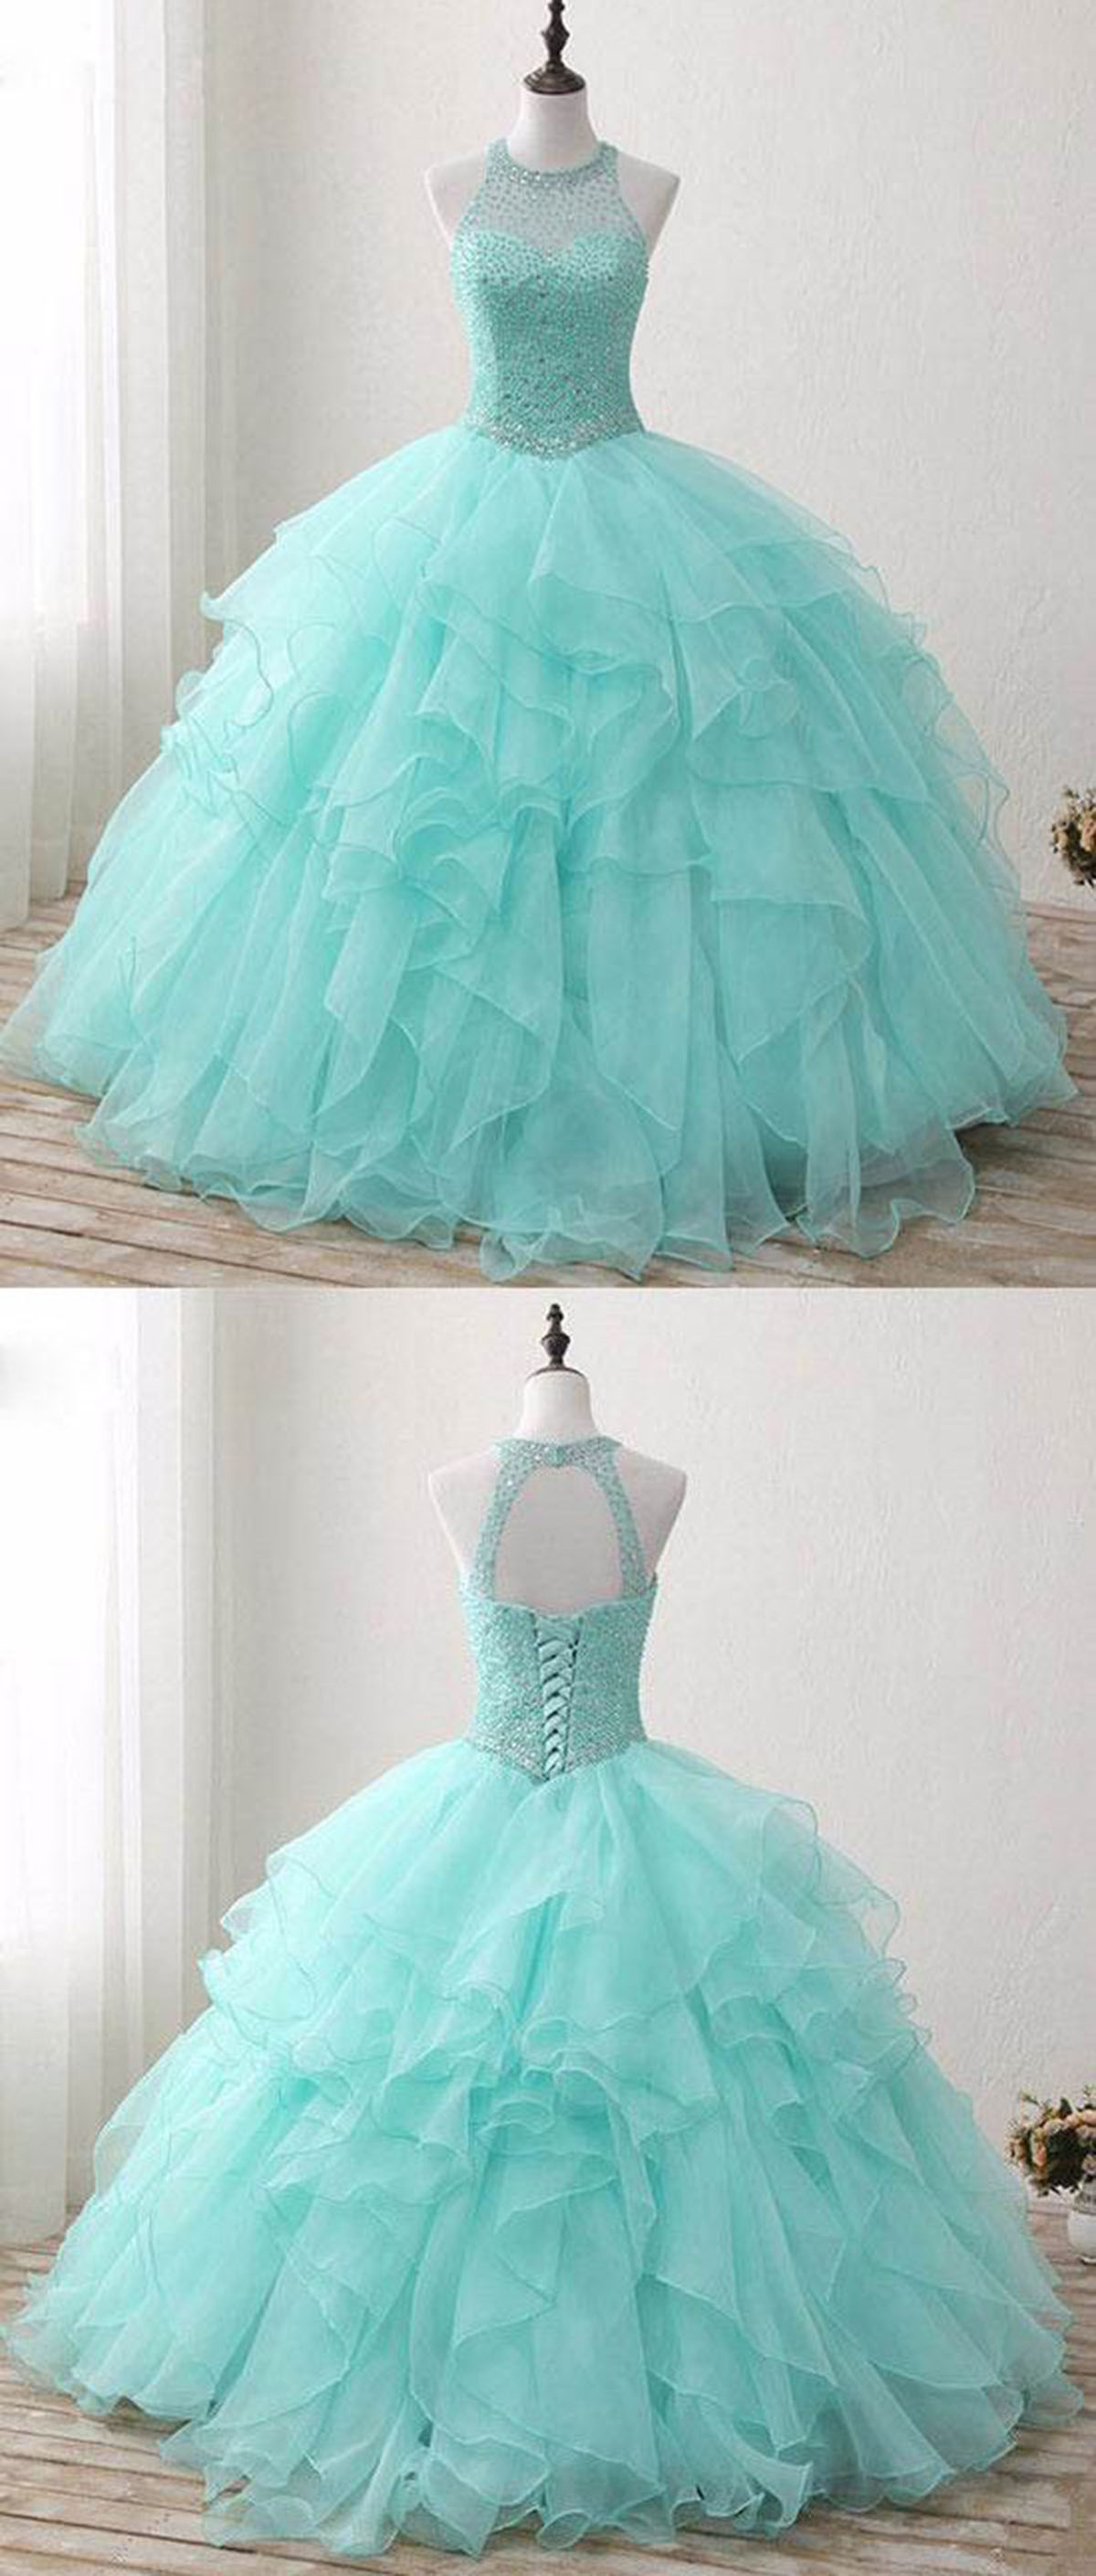 Cheap Prom Dresses by SweetheartDress · Mint tulle silver beads ...